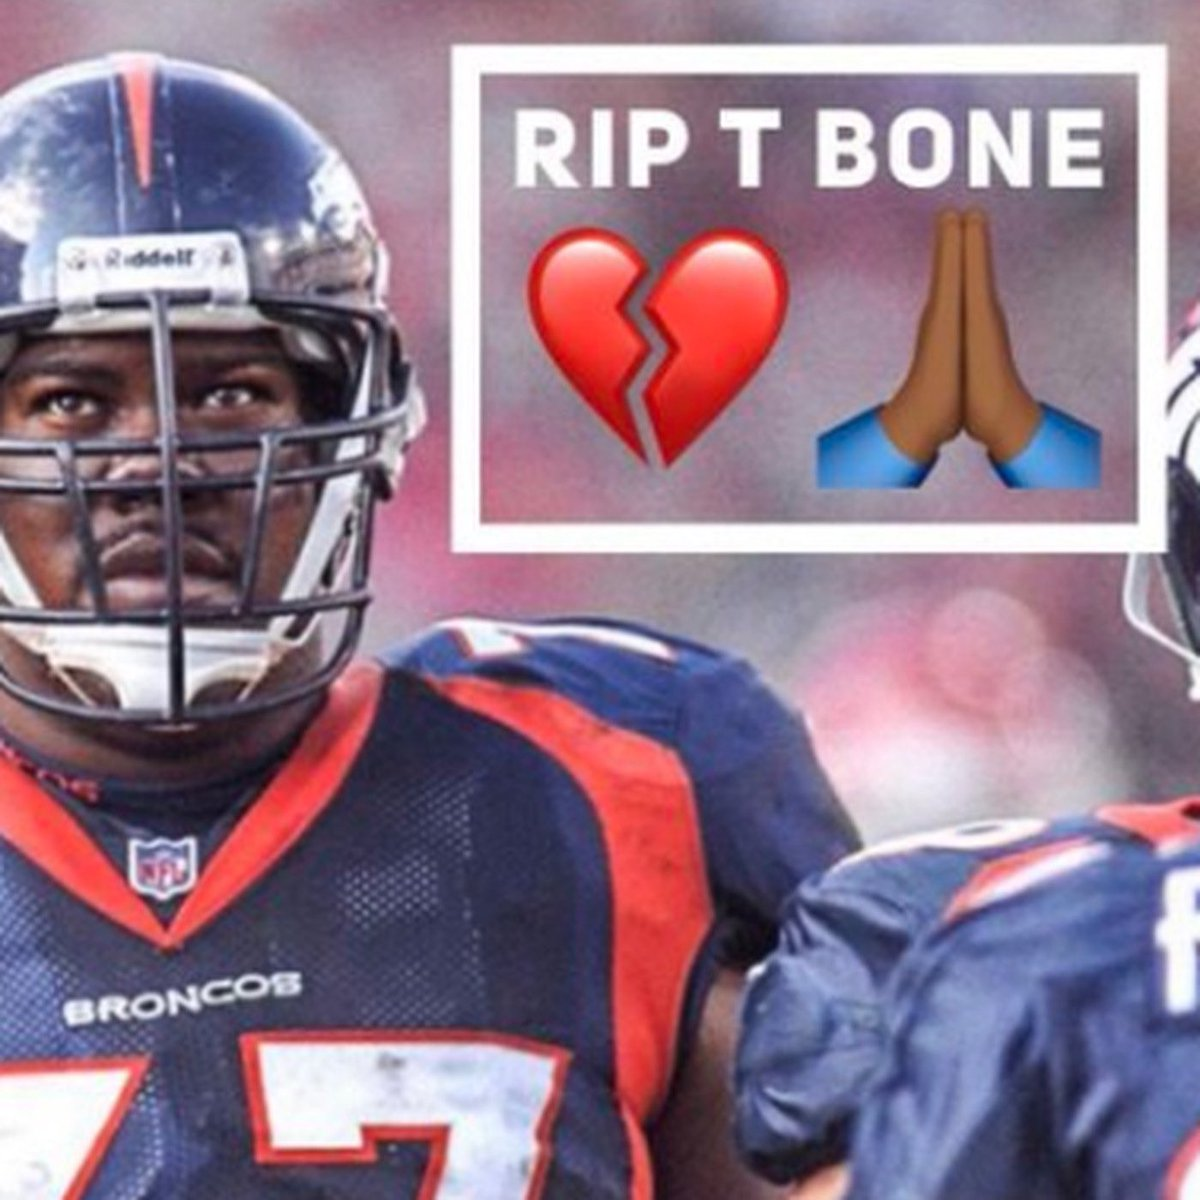 Replying to @markschlereth: Love you my friend! Until we see each other again in heaven RIP.